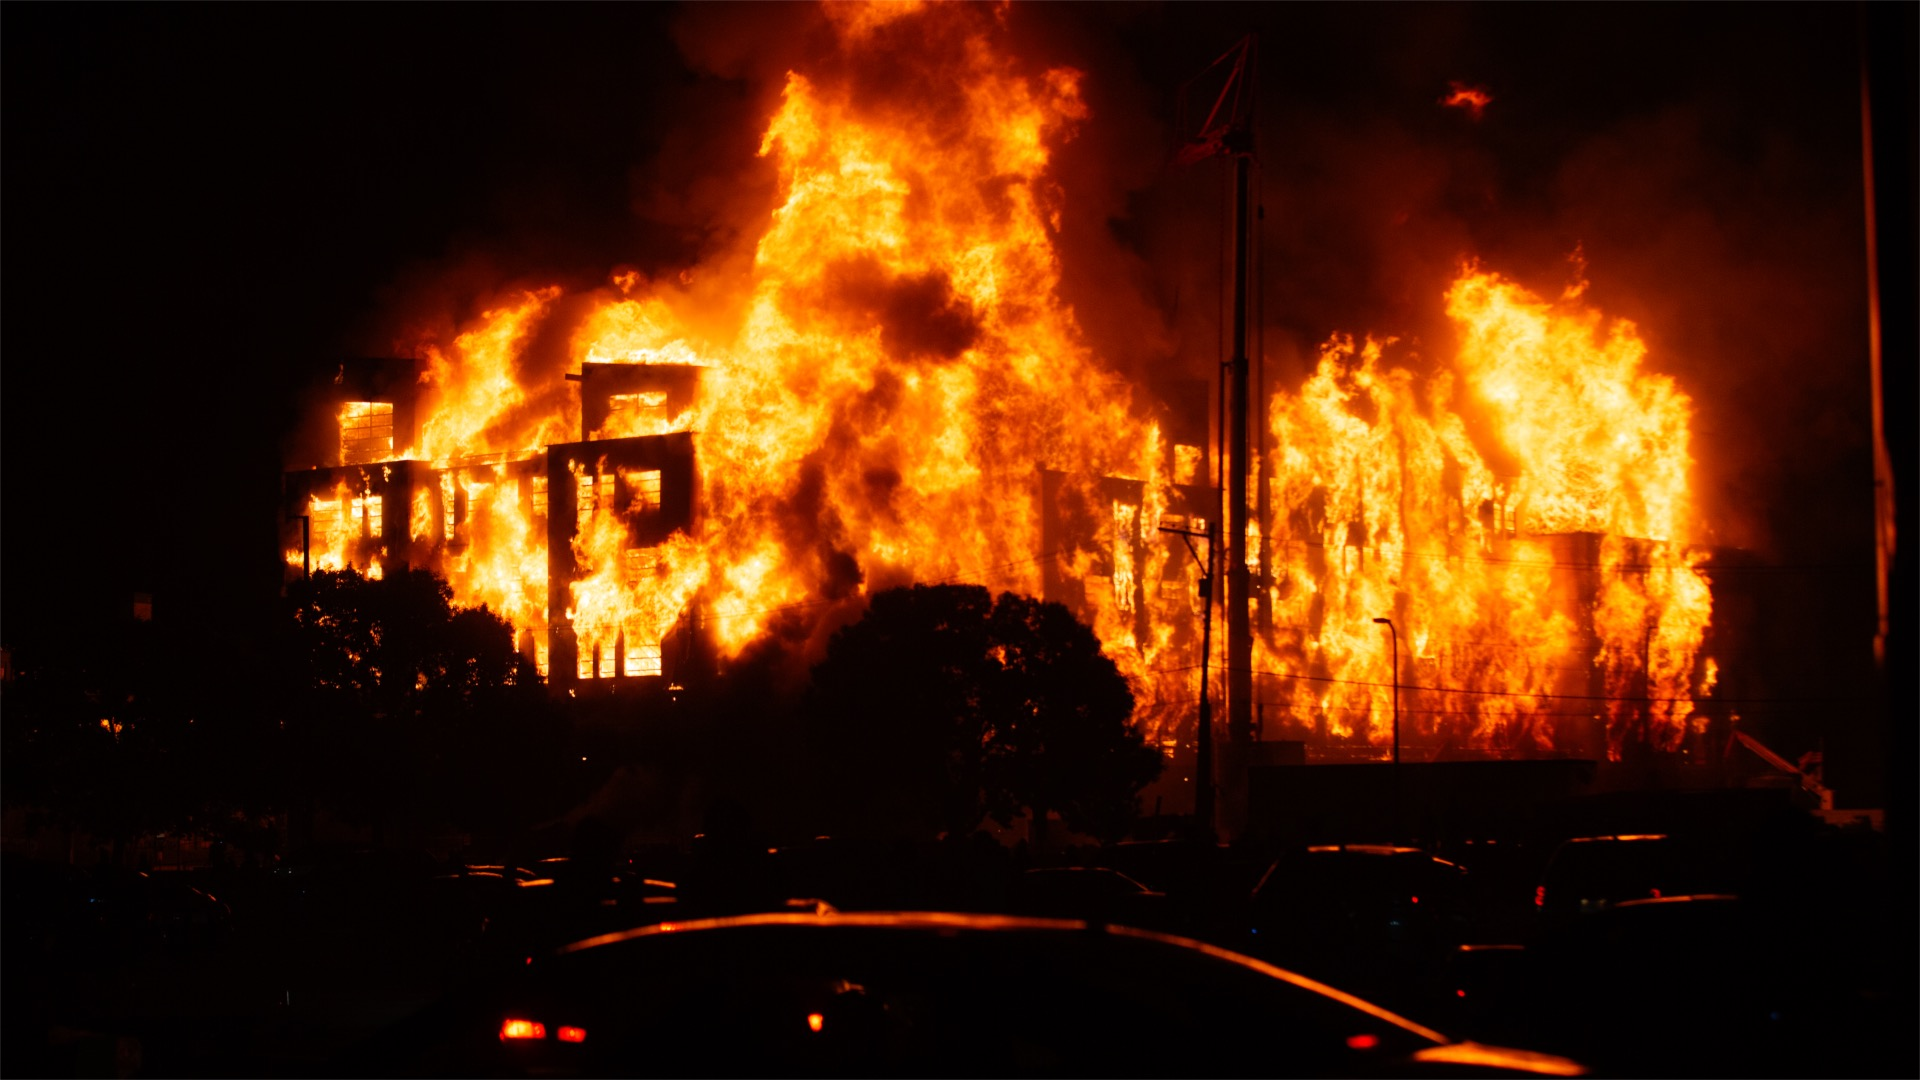 VIDEO: Fires blaze and looters rampage during second night of Minneapolis anti-police protests following black man